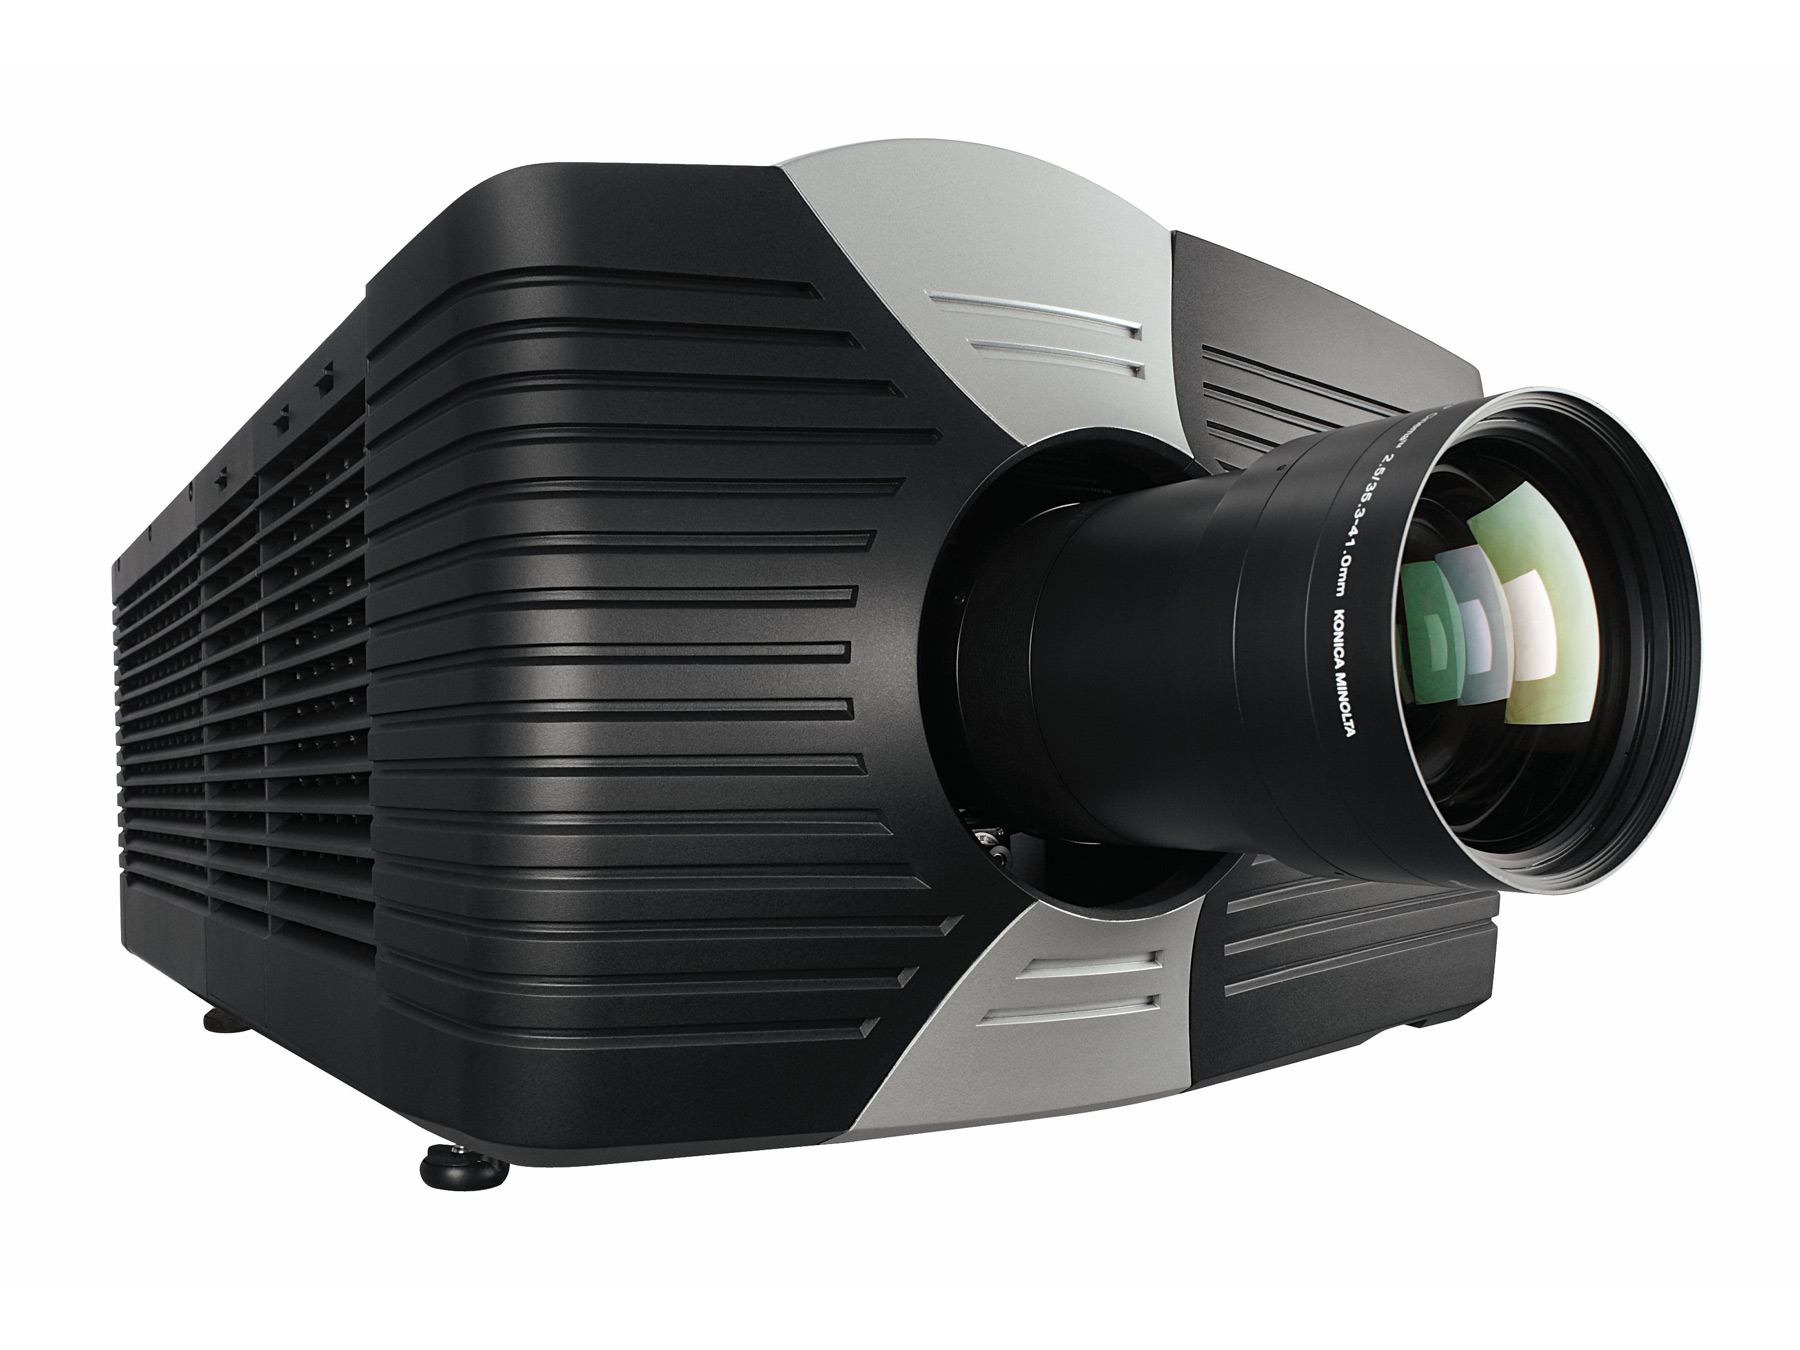 /globalassets/.catalog/products/images/christie-cp4220/gallery/digital-cinema-projector-4k-image-8.jpg